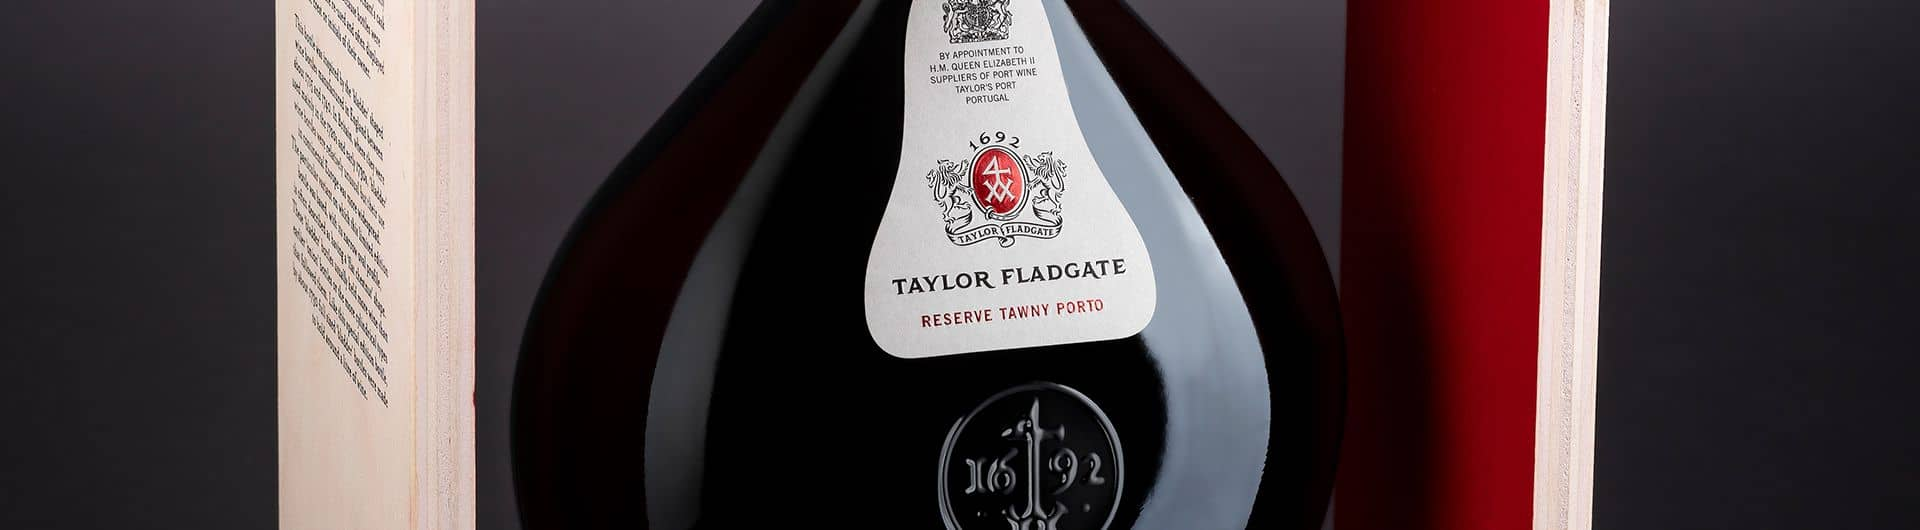 Historic Limited Edition bottle image by Taylor Fladgate